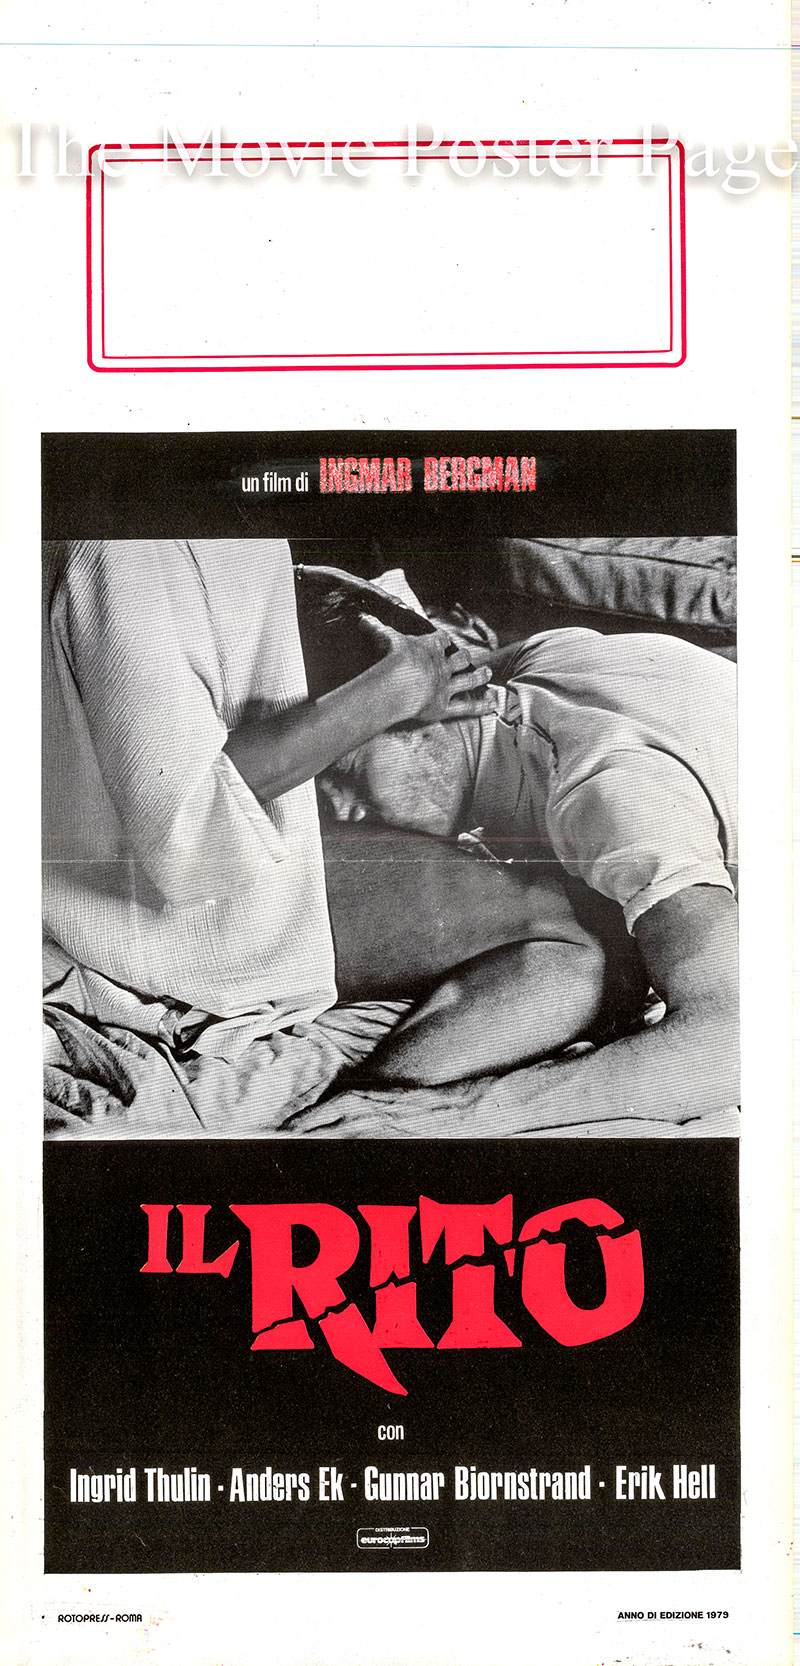 Pictured is an Italian locandina poster for a 1979 rerelease of the 1969 Ingmar Bergman film The Rite starring Ingrid Thulin as Thea Winkelmann.